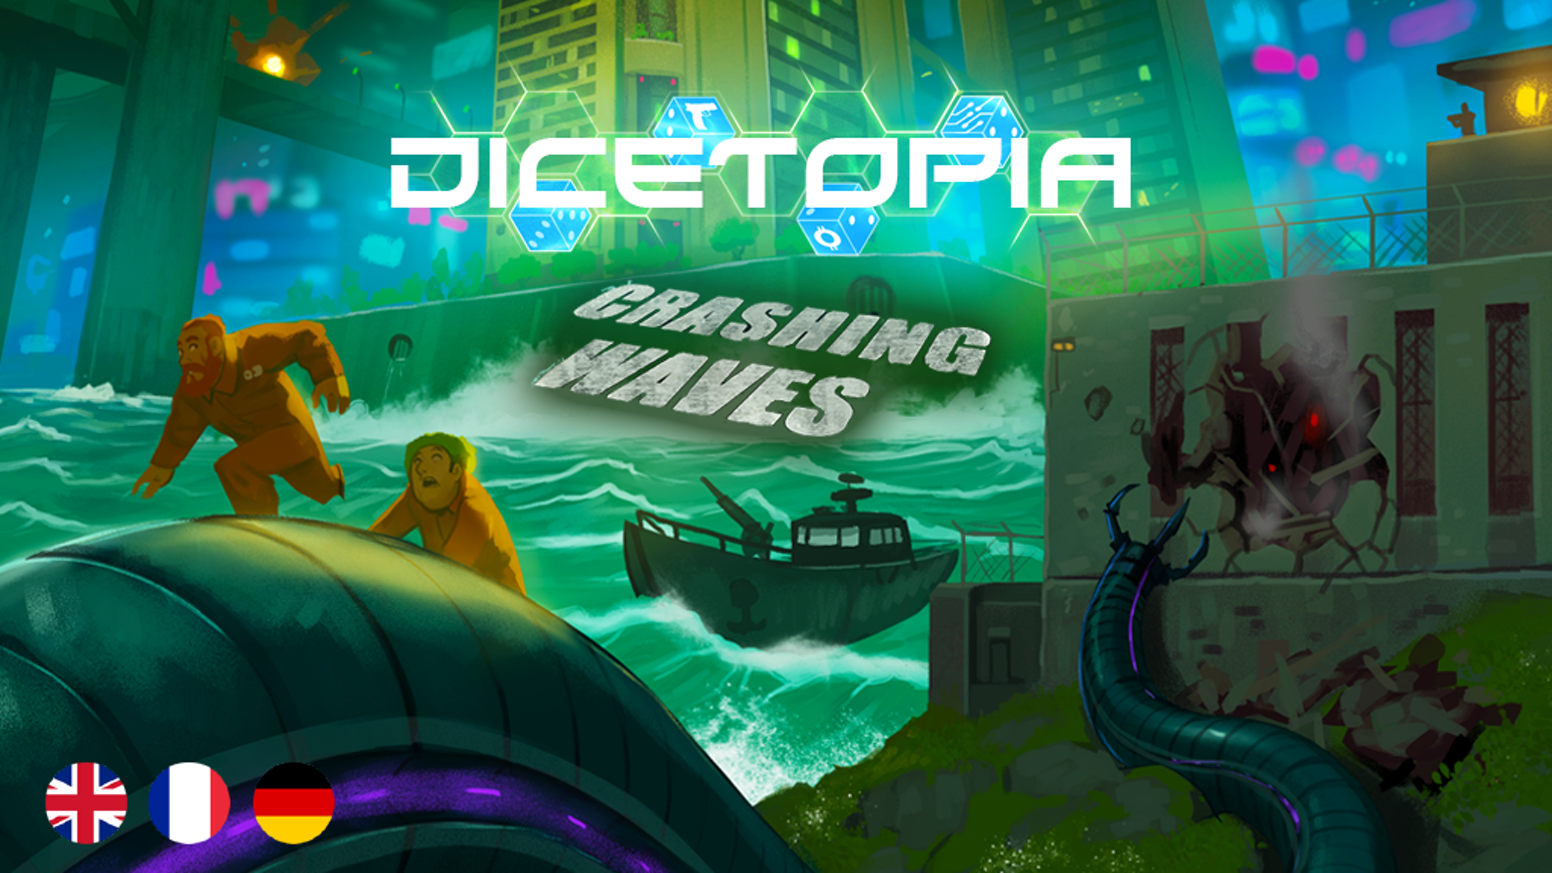 A final expansion for Dicetopia including a new unsettling dock area, thugs, new factions, 6 player support and a rebalanced city!